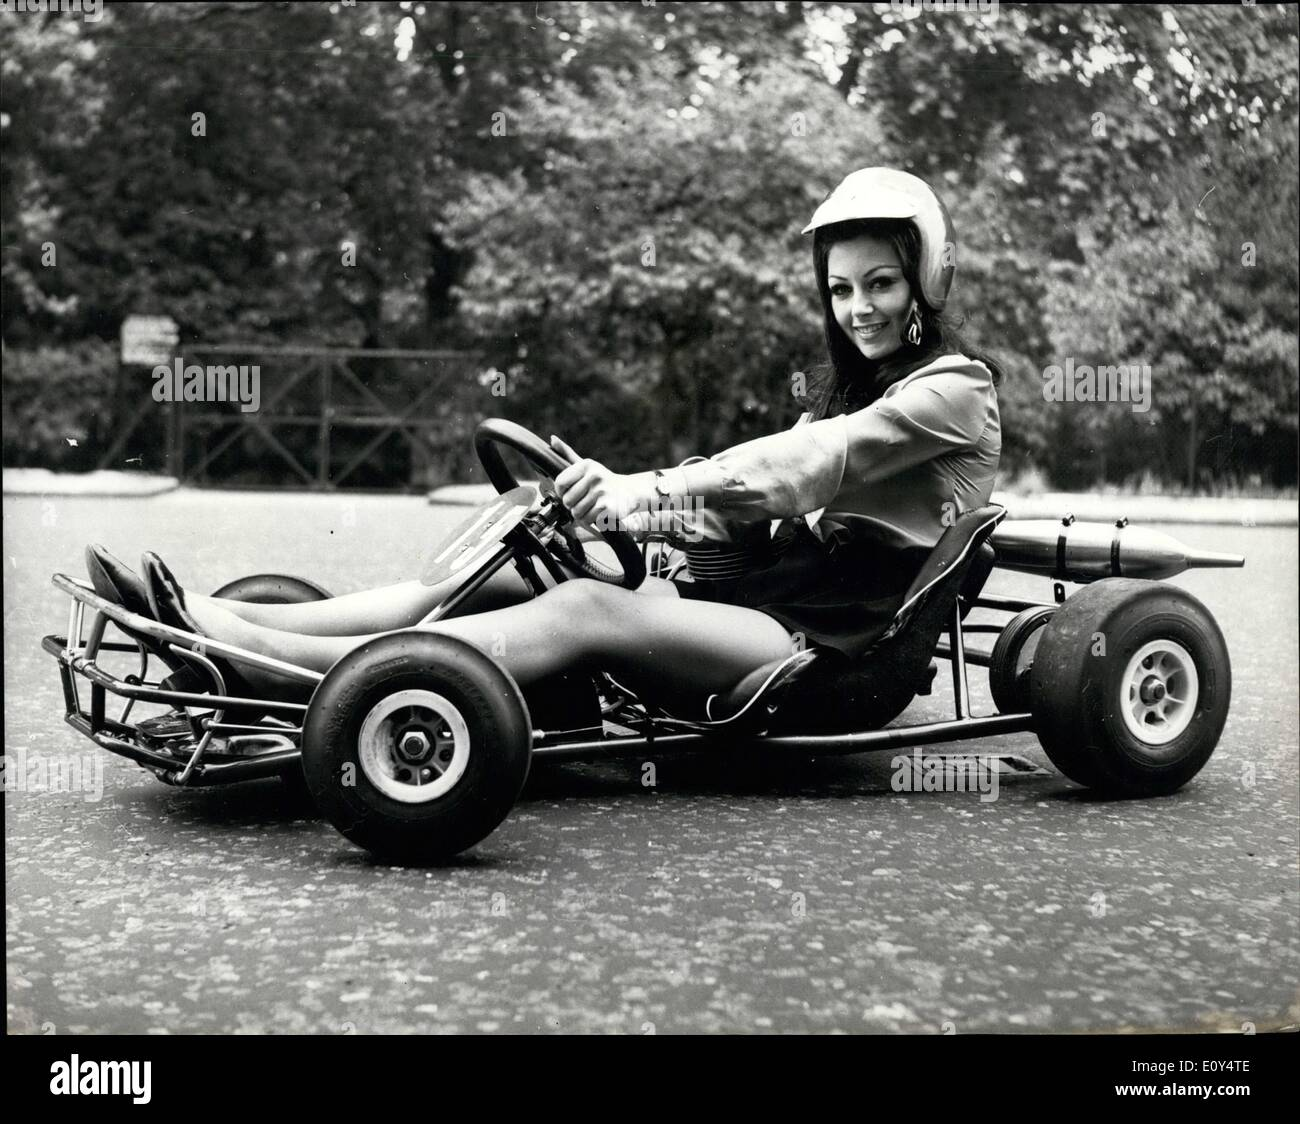 Historic Karts Stock Photos & Historic Karts Stock Images - Alamy